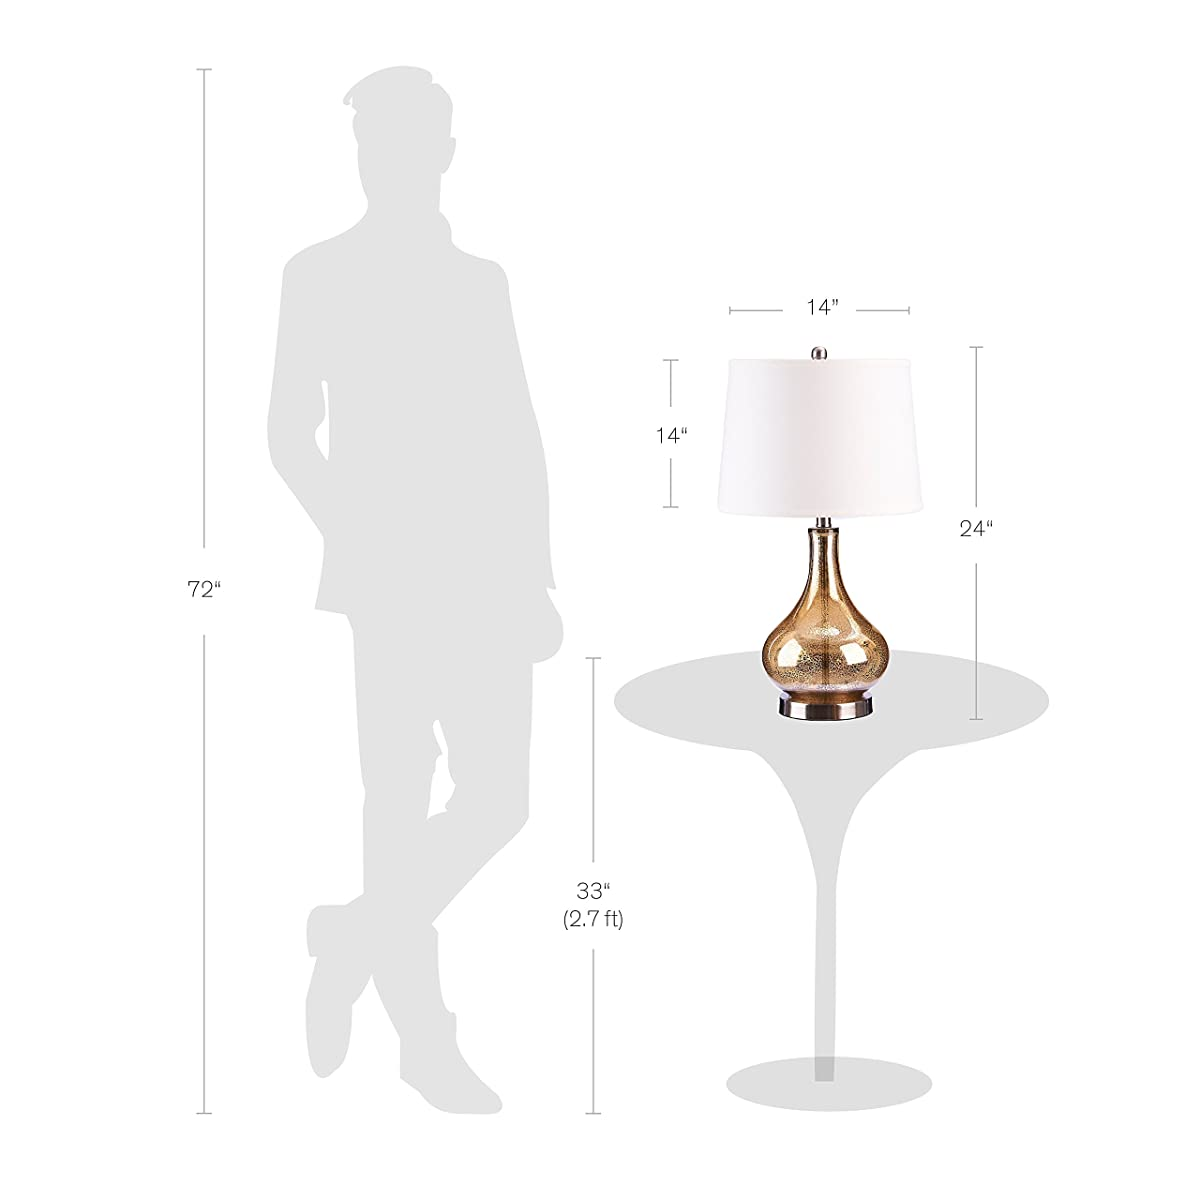 Catalina Lighting 19560-005 3-Way Mercury Glass Gourd Table Lamp with Beige Linen Drum Shade, with Bulb, Gold